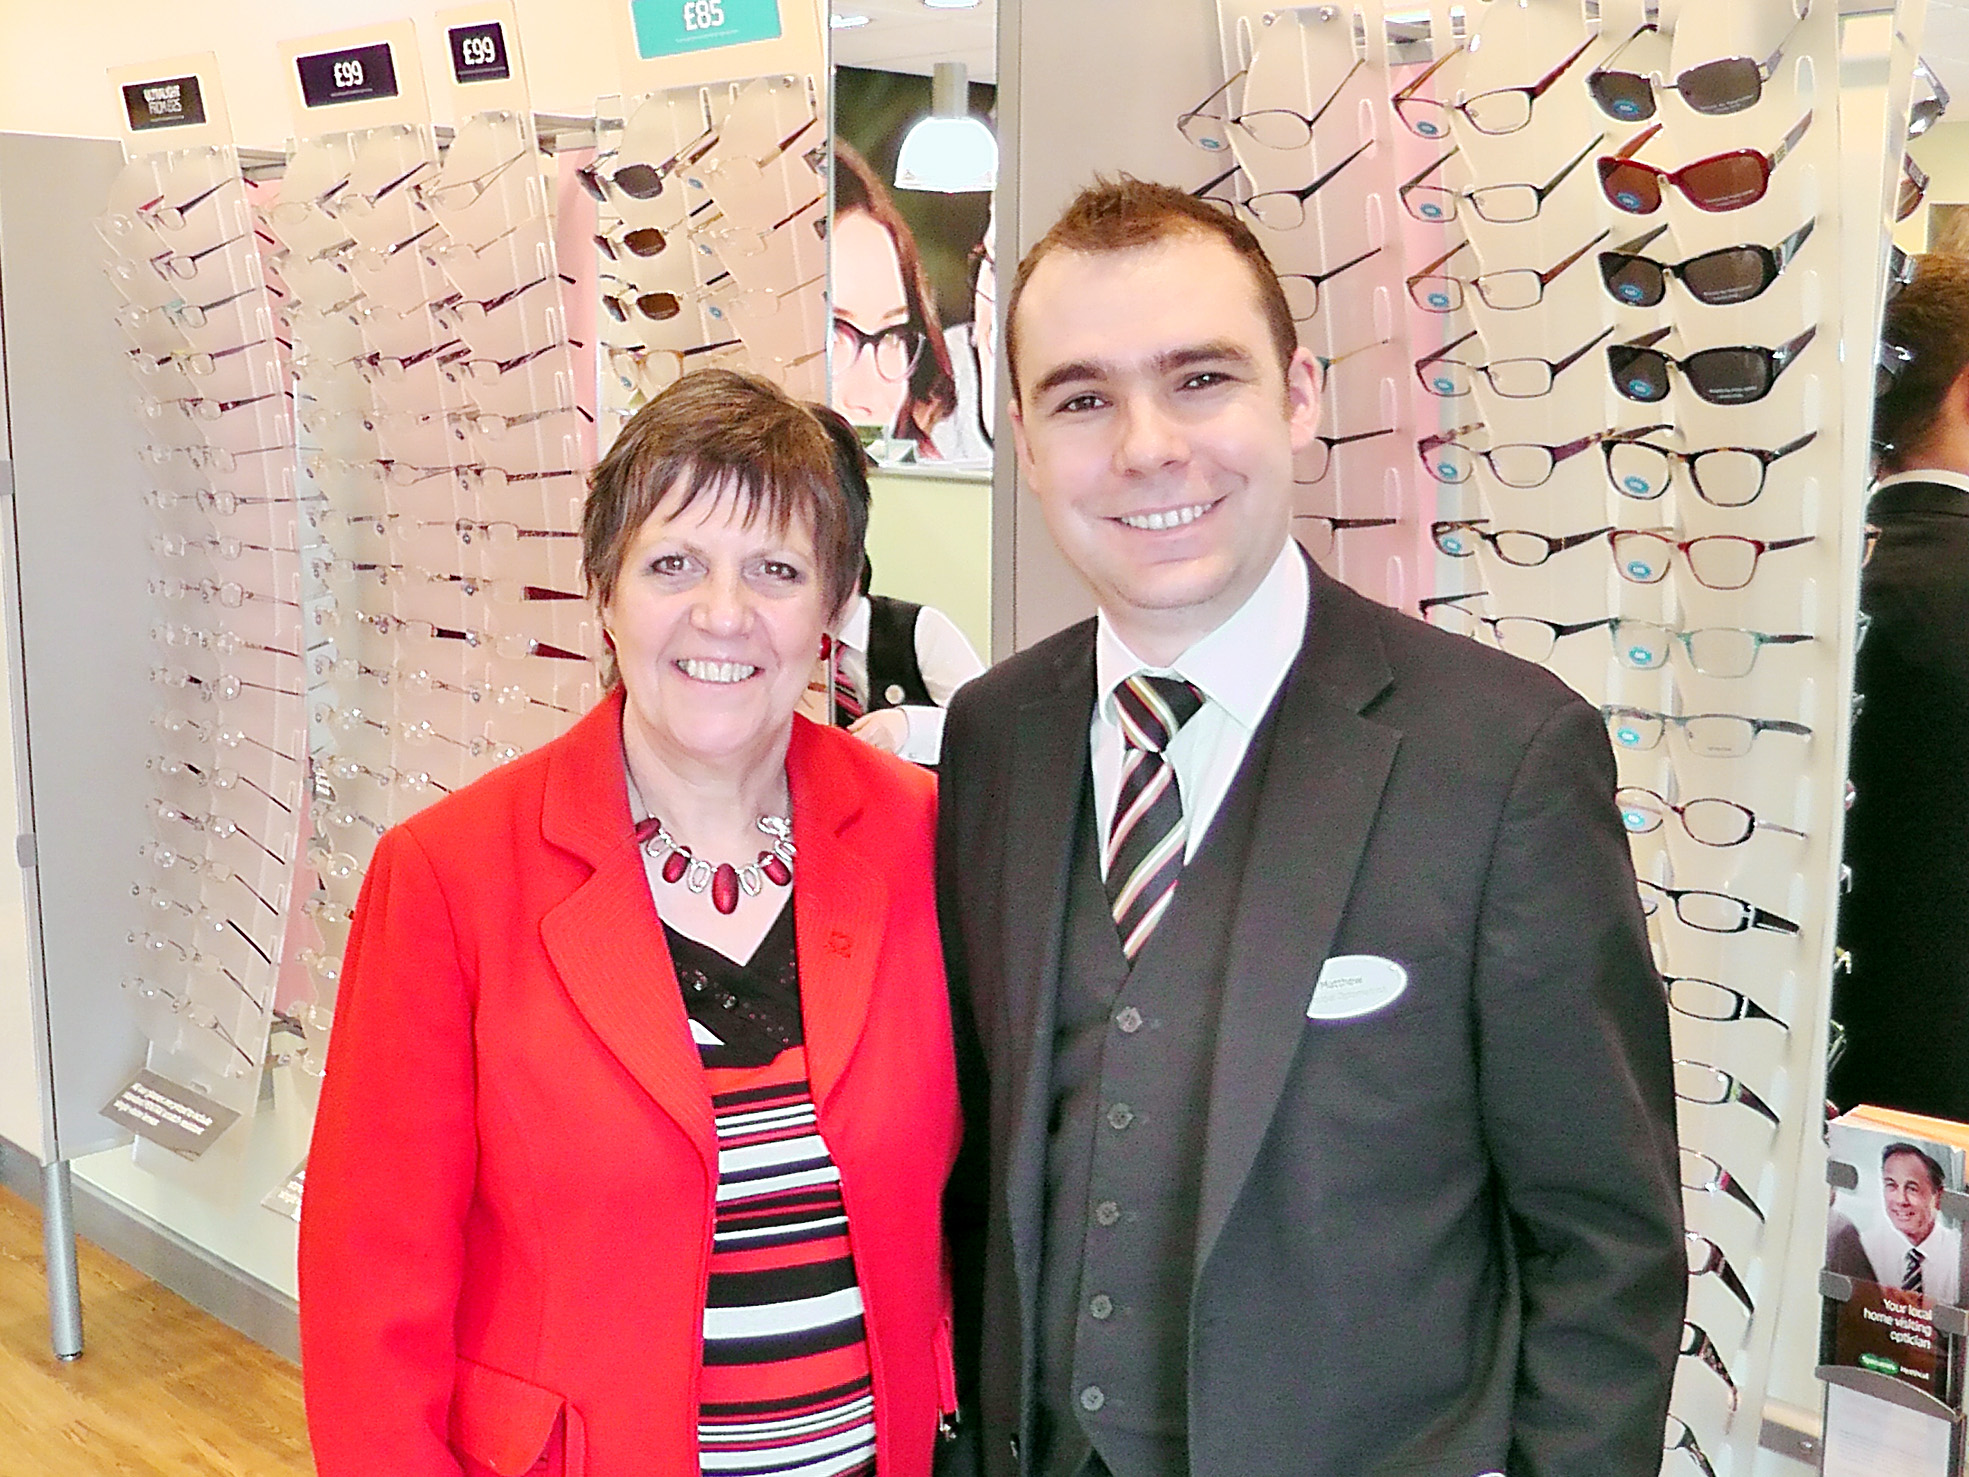 ca901cde901b Eye research MP did go to Specsavers